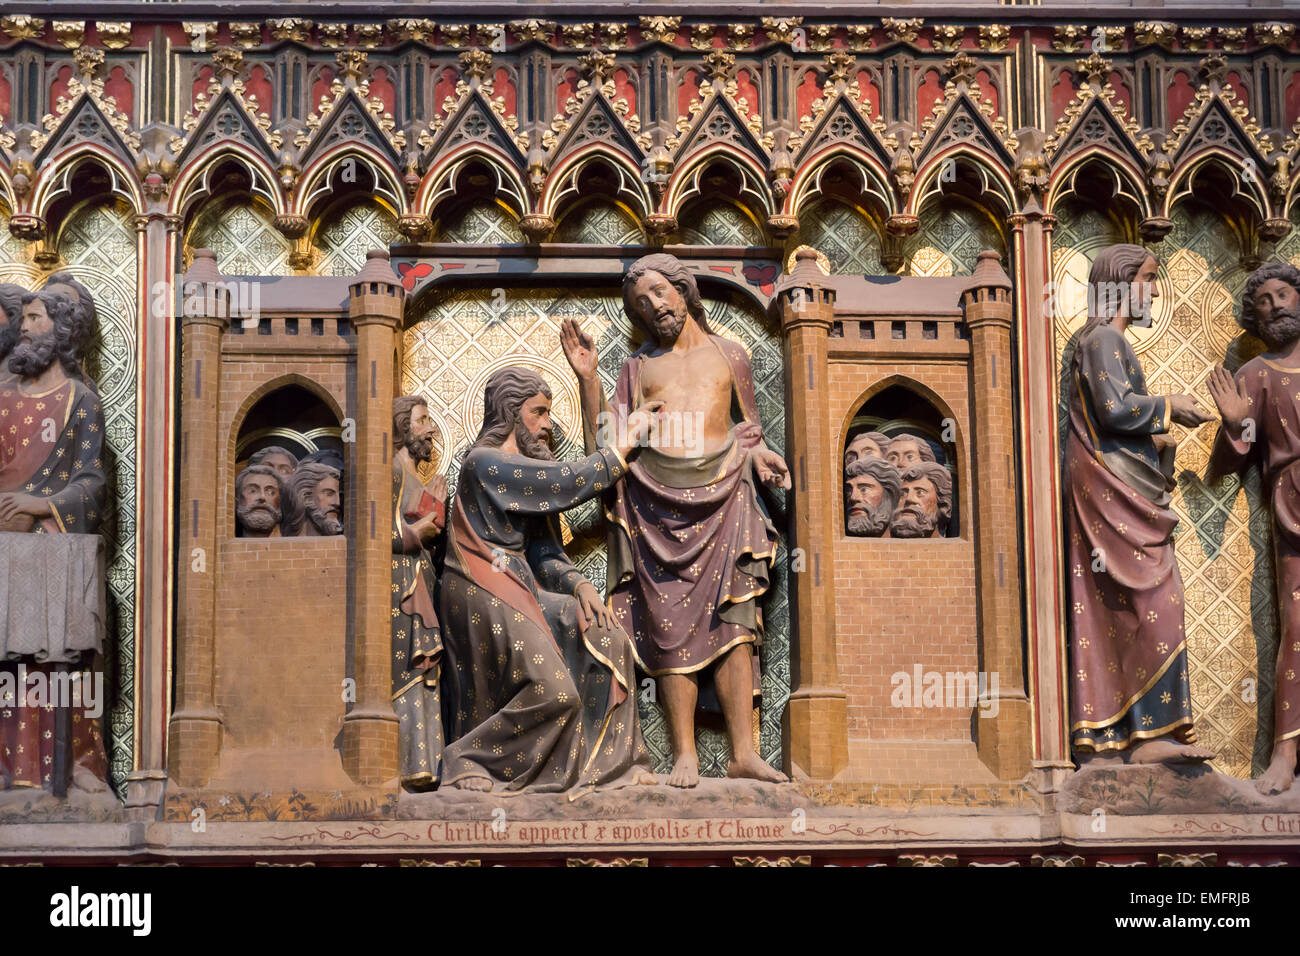 Medieval Wood Sculpture On The Chancel Screen In Notre